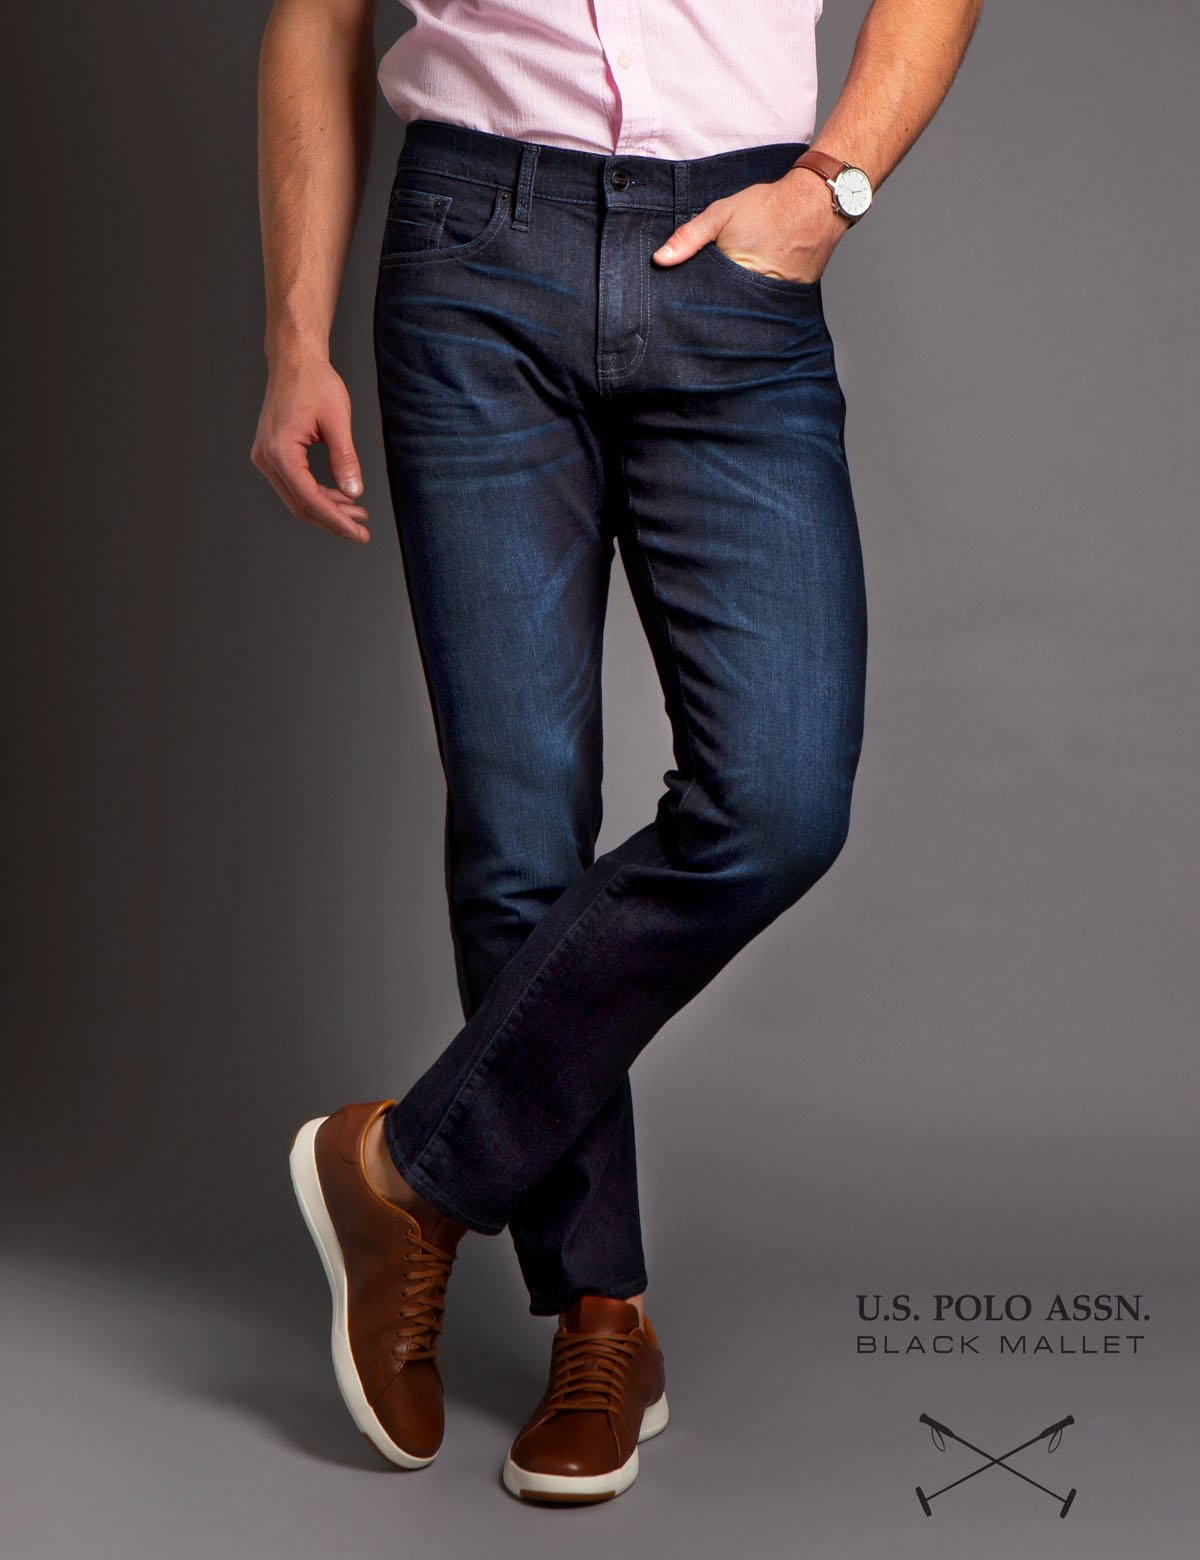 BLACK MALLET SLIM FIT DENIM